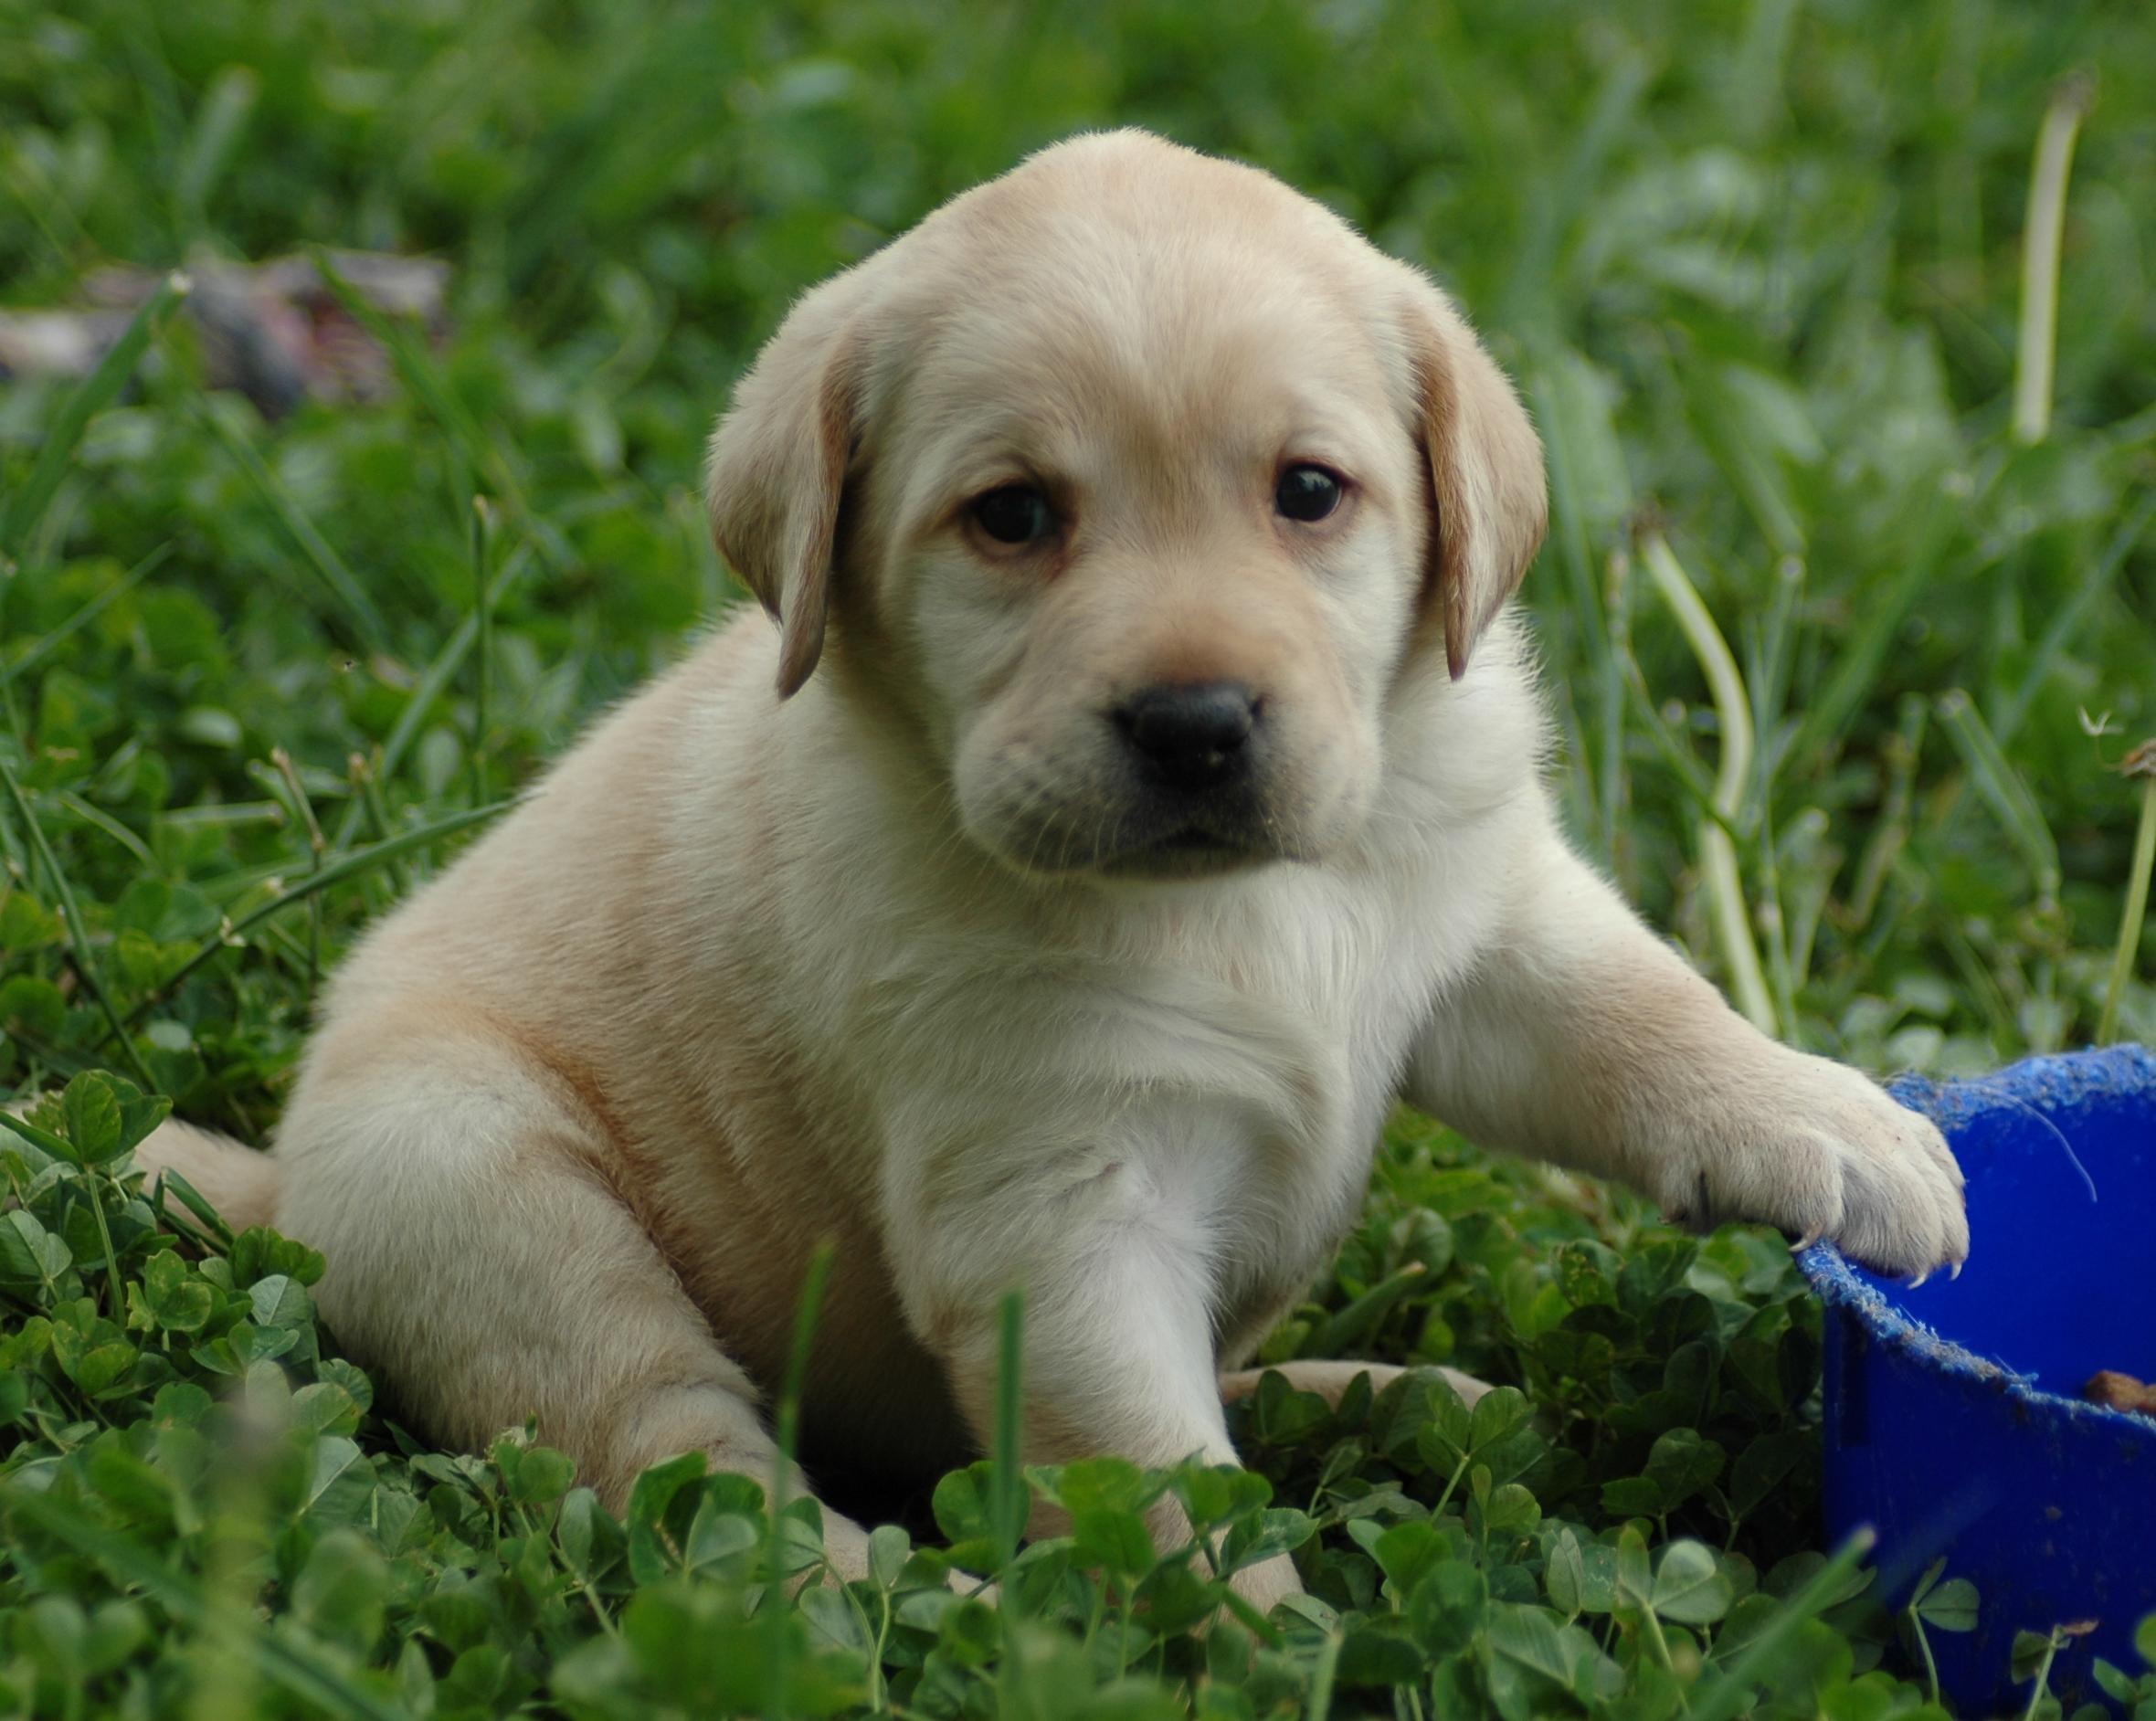 http://fascinatingly.com/wp-content/gallery/animals---dogs/puppy-lab-HD-wallpaper.jpg